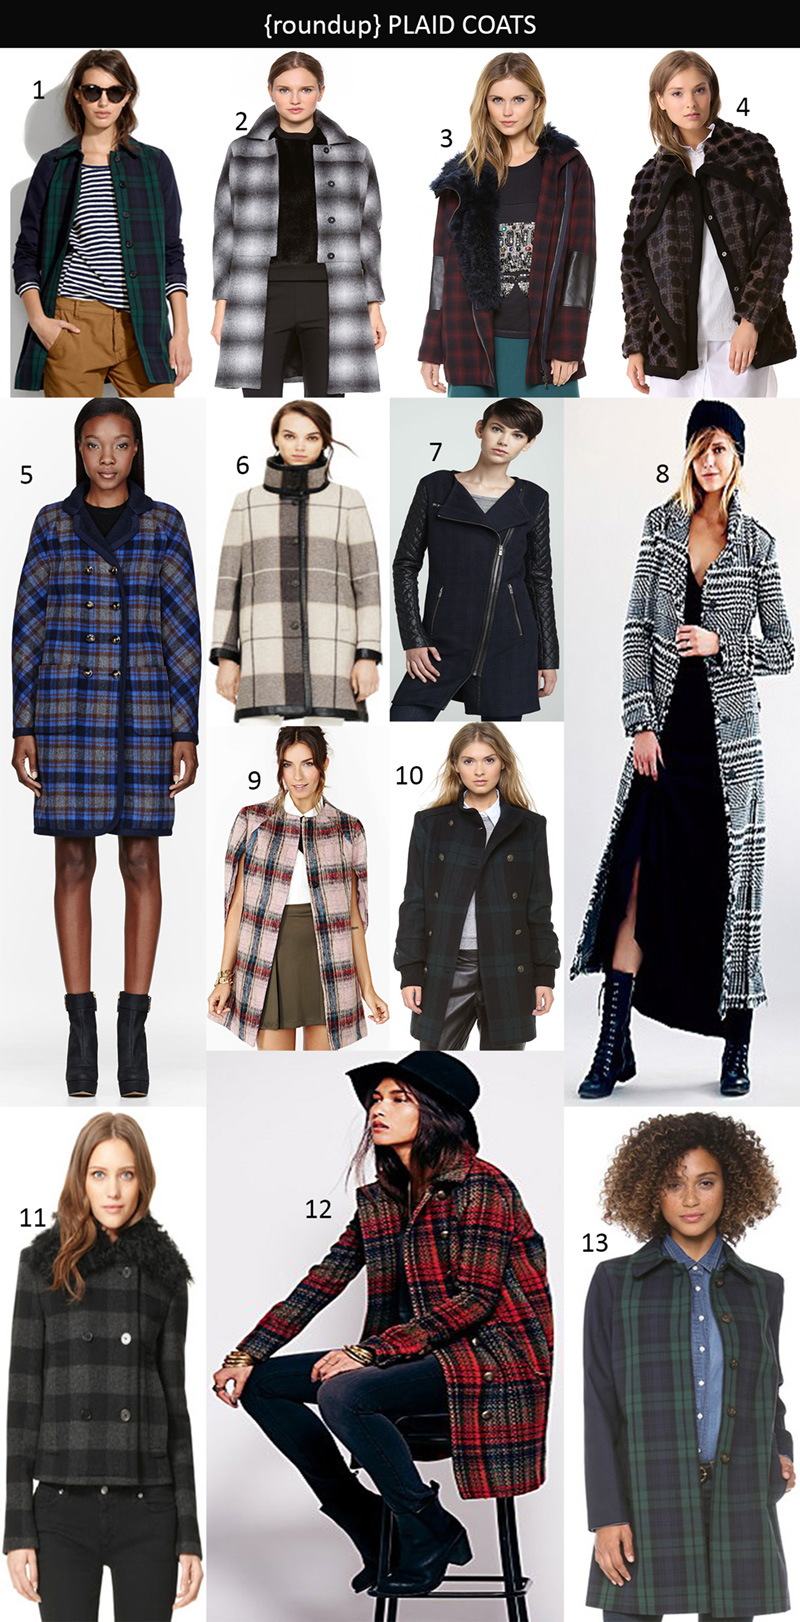 plaid coat, plaid coats trend